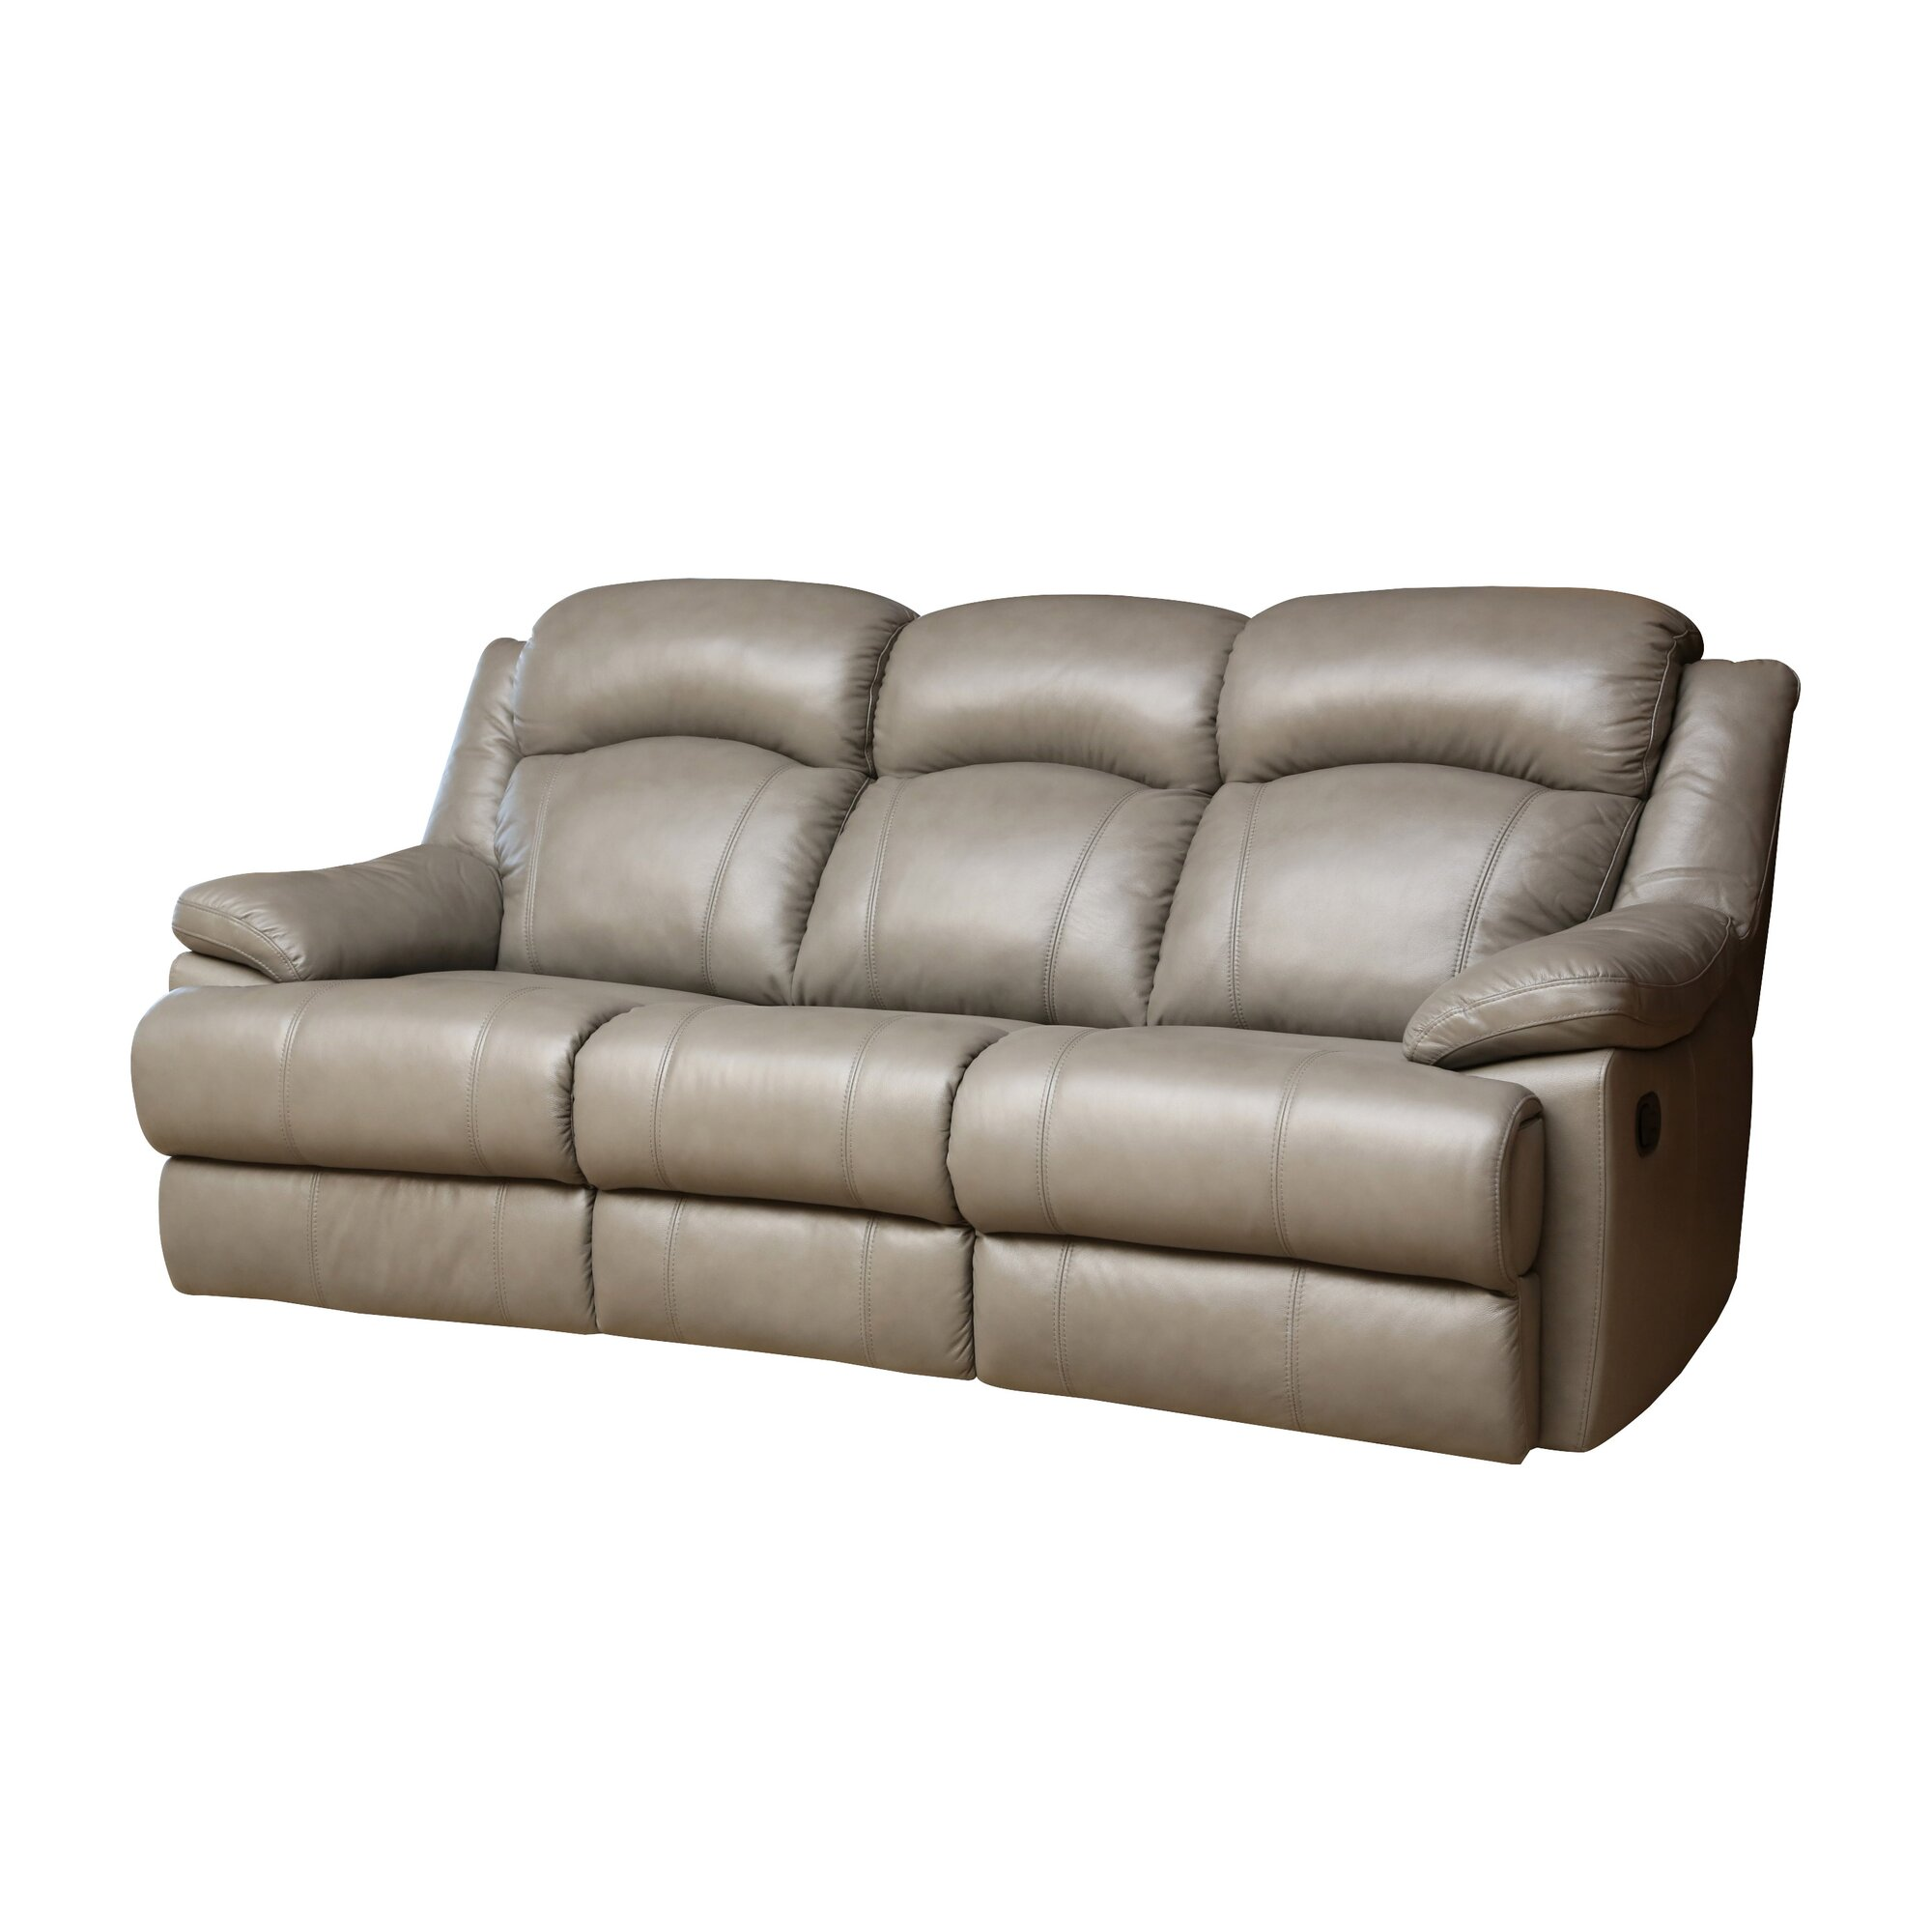 Darby Home Co Cuyler Leather Sofa And Loveseat Set